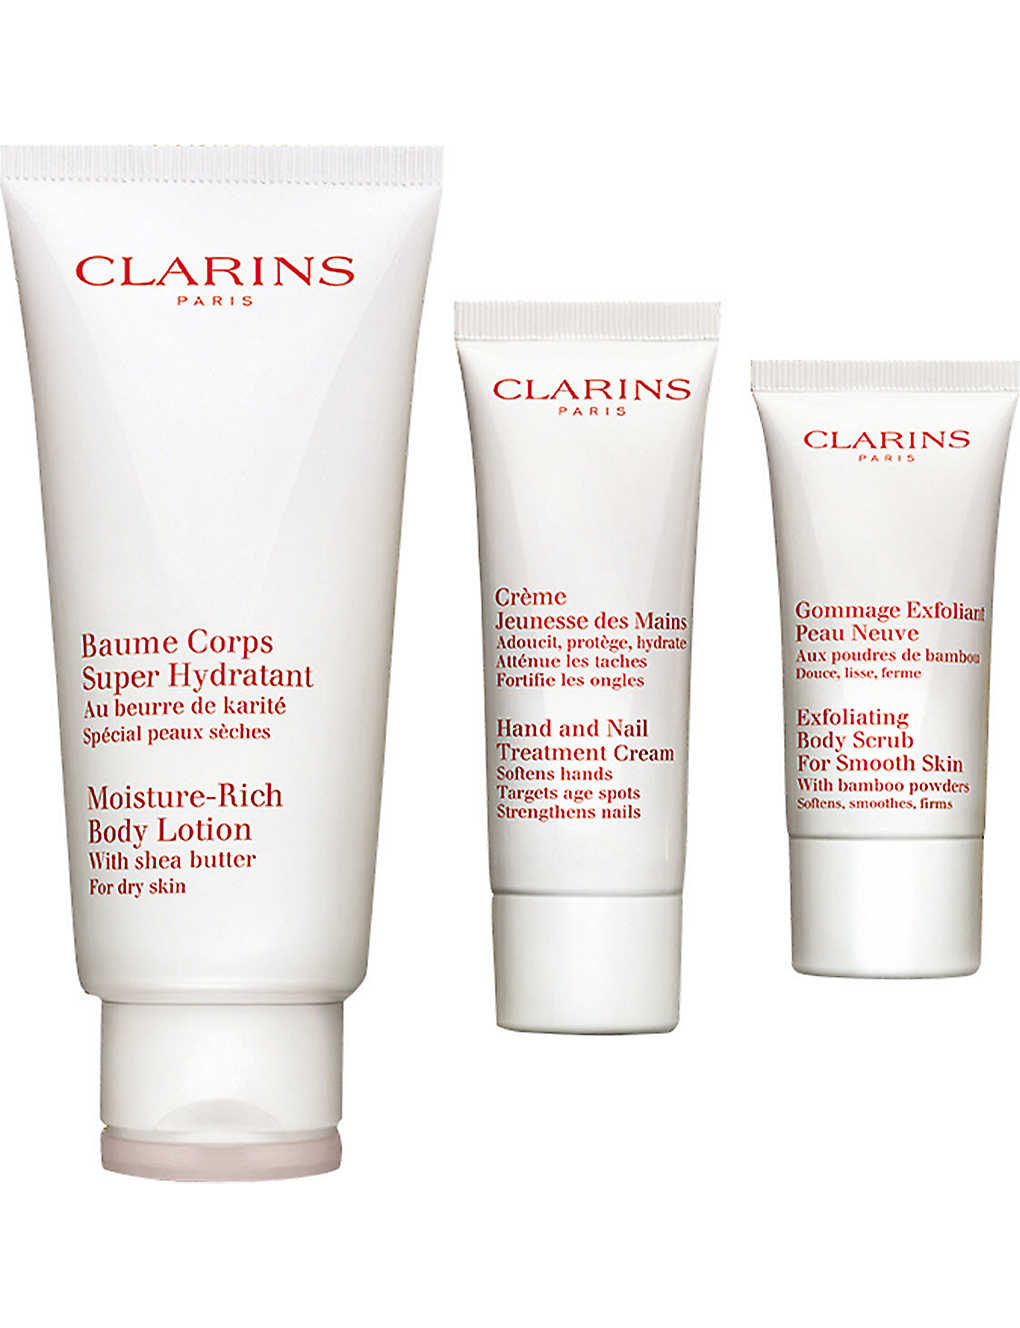 CLARINS: Body Care Collection - Pampering Favourites